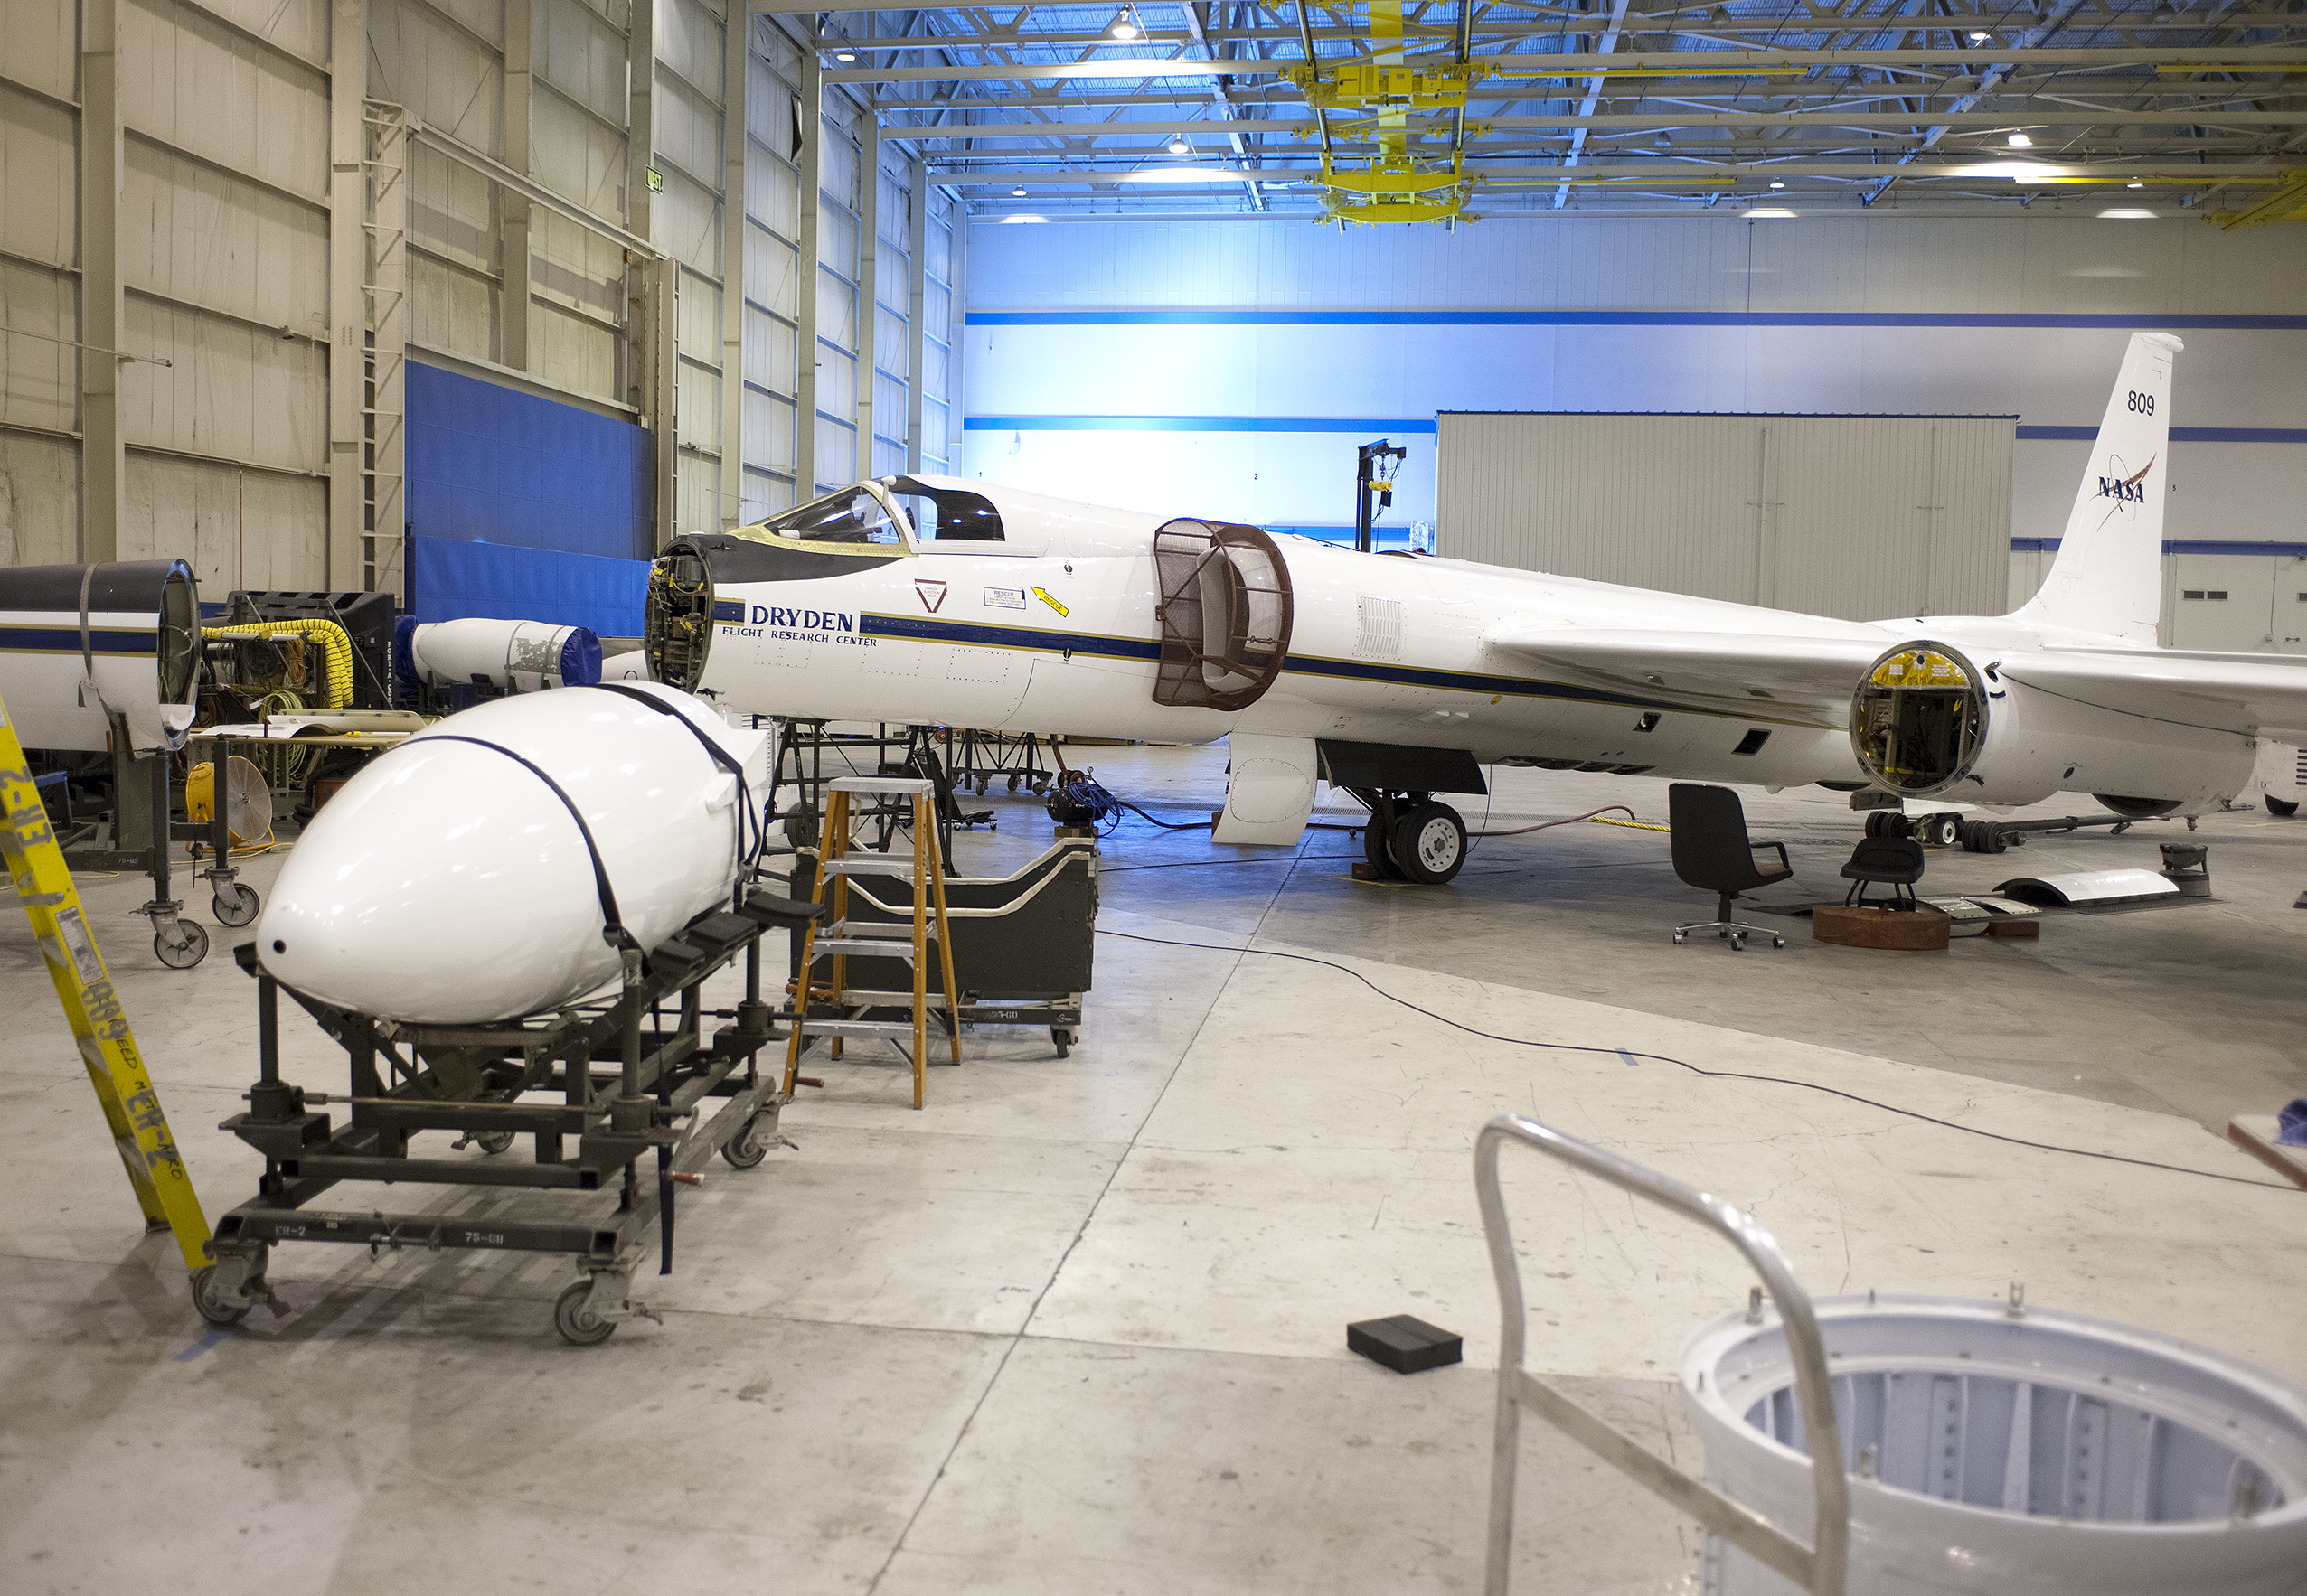 The equipment bays and wing pods of NASA's high-altitude ER-2 will carry 15 specialized instruments to study how the vertical convection of air pollution and natural emissions affect climate change. Image Credit: NASA / Tom Tschida